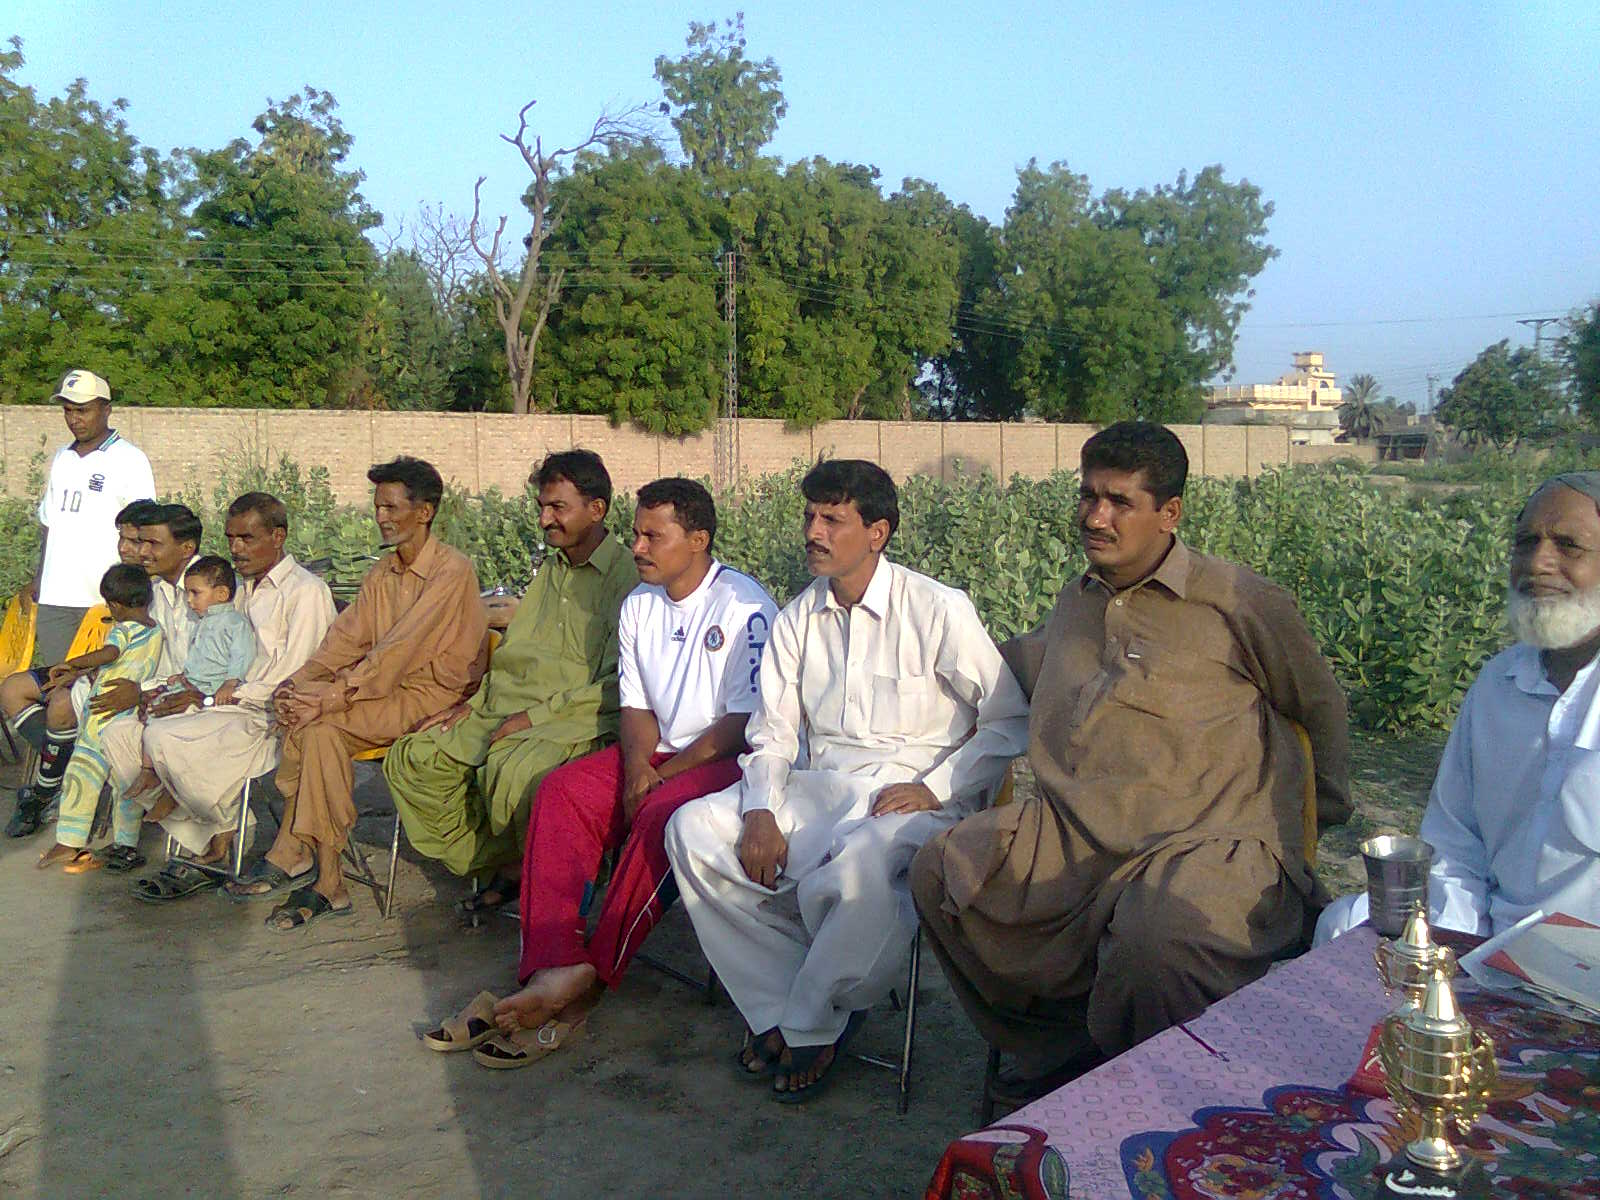 FOUNDER OF YOUNG BALOCH AND KING BALOCH FOOTBALL CLUB USTAD MEHMOOD ALI BROHI AND OTHER MEMBERS *